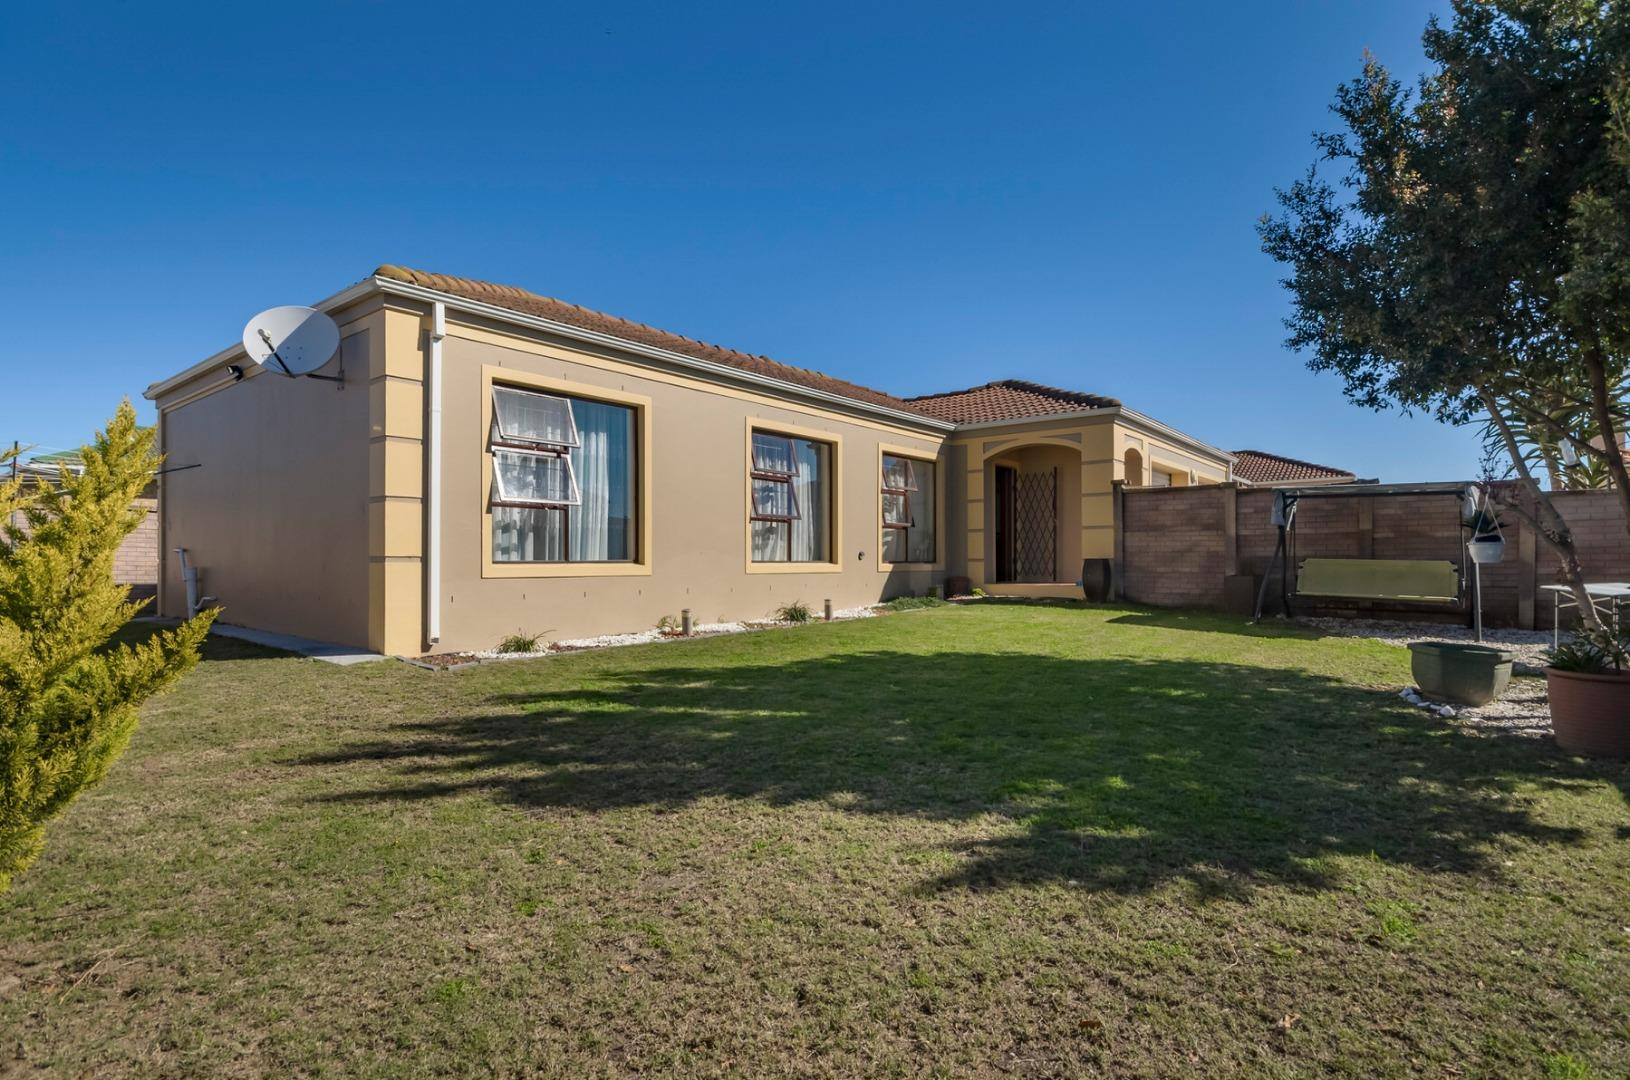 3 Bedroom  Townhouse for Sale in Port Elizabeth - Eastern Cape